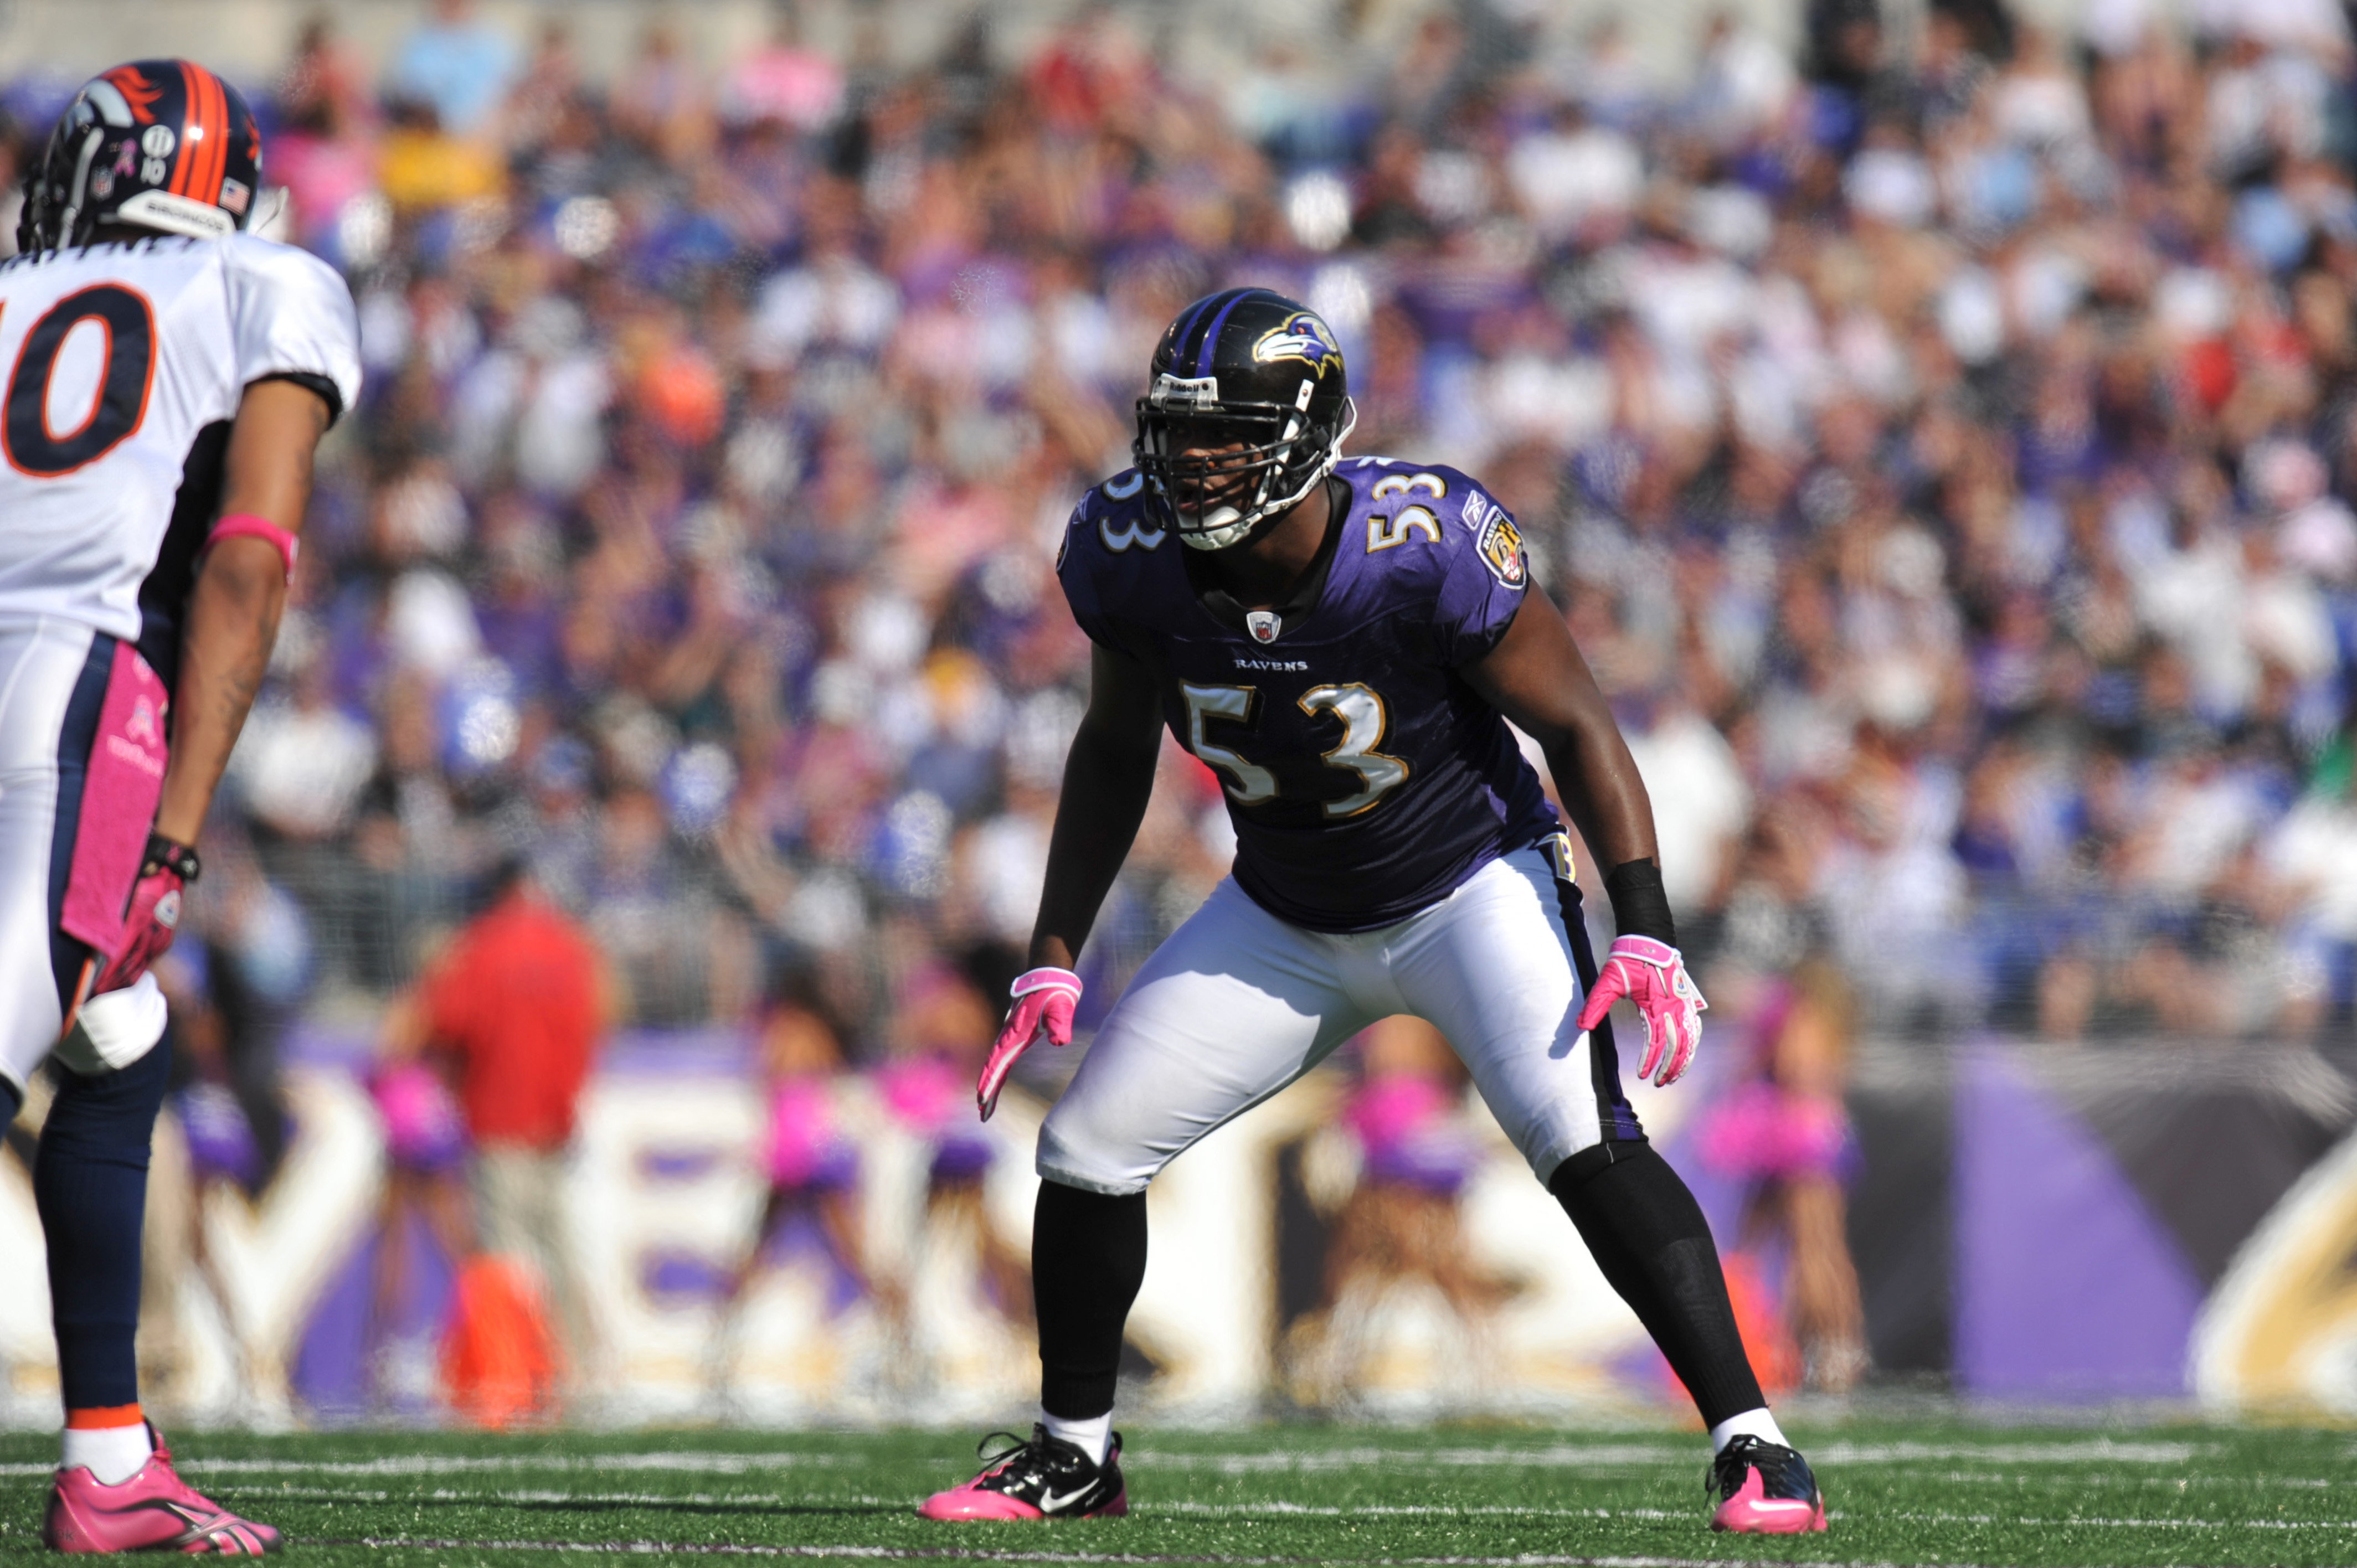 BALTIMORE, MD - OCTOBER 10: Ray Lewis #52 of the Baltimore Ravens defends against the Denver Broncos at M&T Bank Stadium on October 10, 2010 in Baltimore, Maryland. Players wore pink in recognition of Breast Cancer Awareness Month. The Ravens defeated the